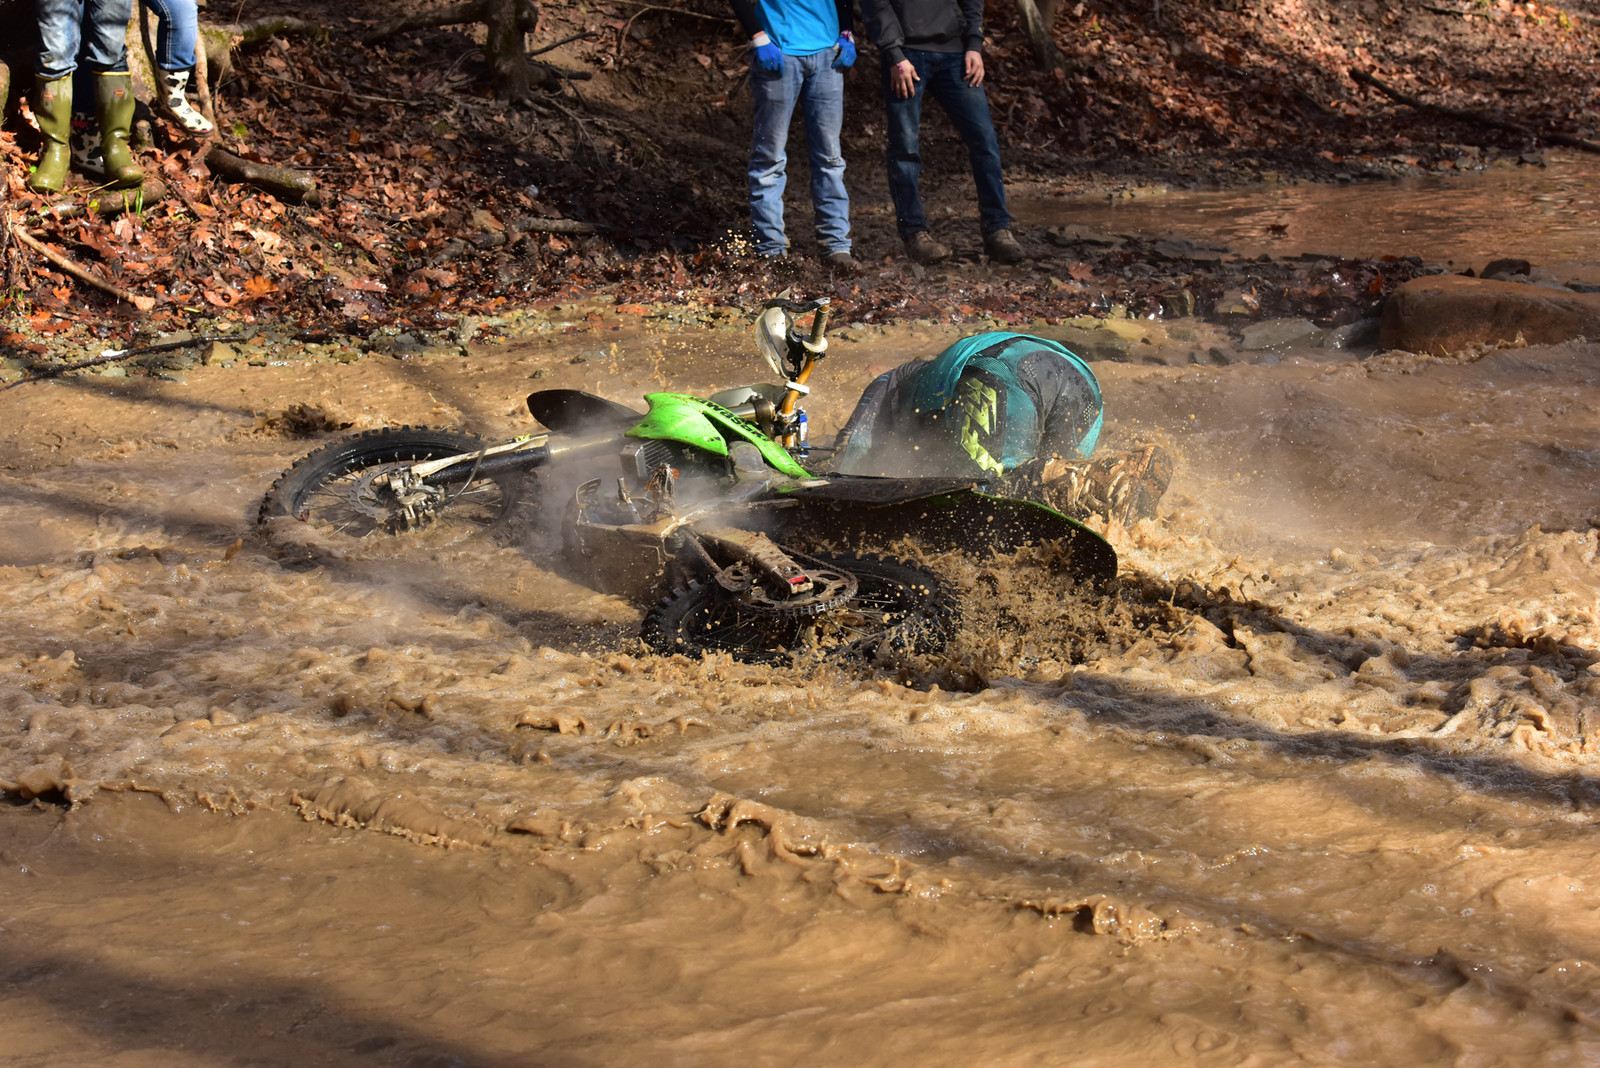 Creek crossing - Photo Blast: Ironman GNCC - Motocross Pictures - Vital MX